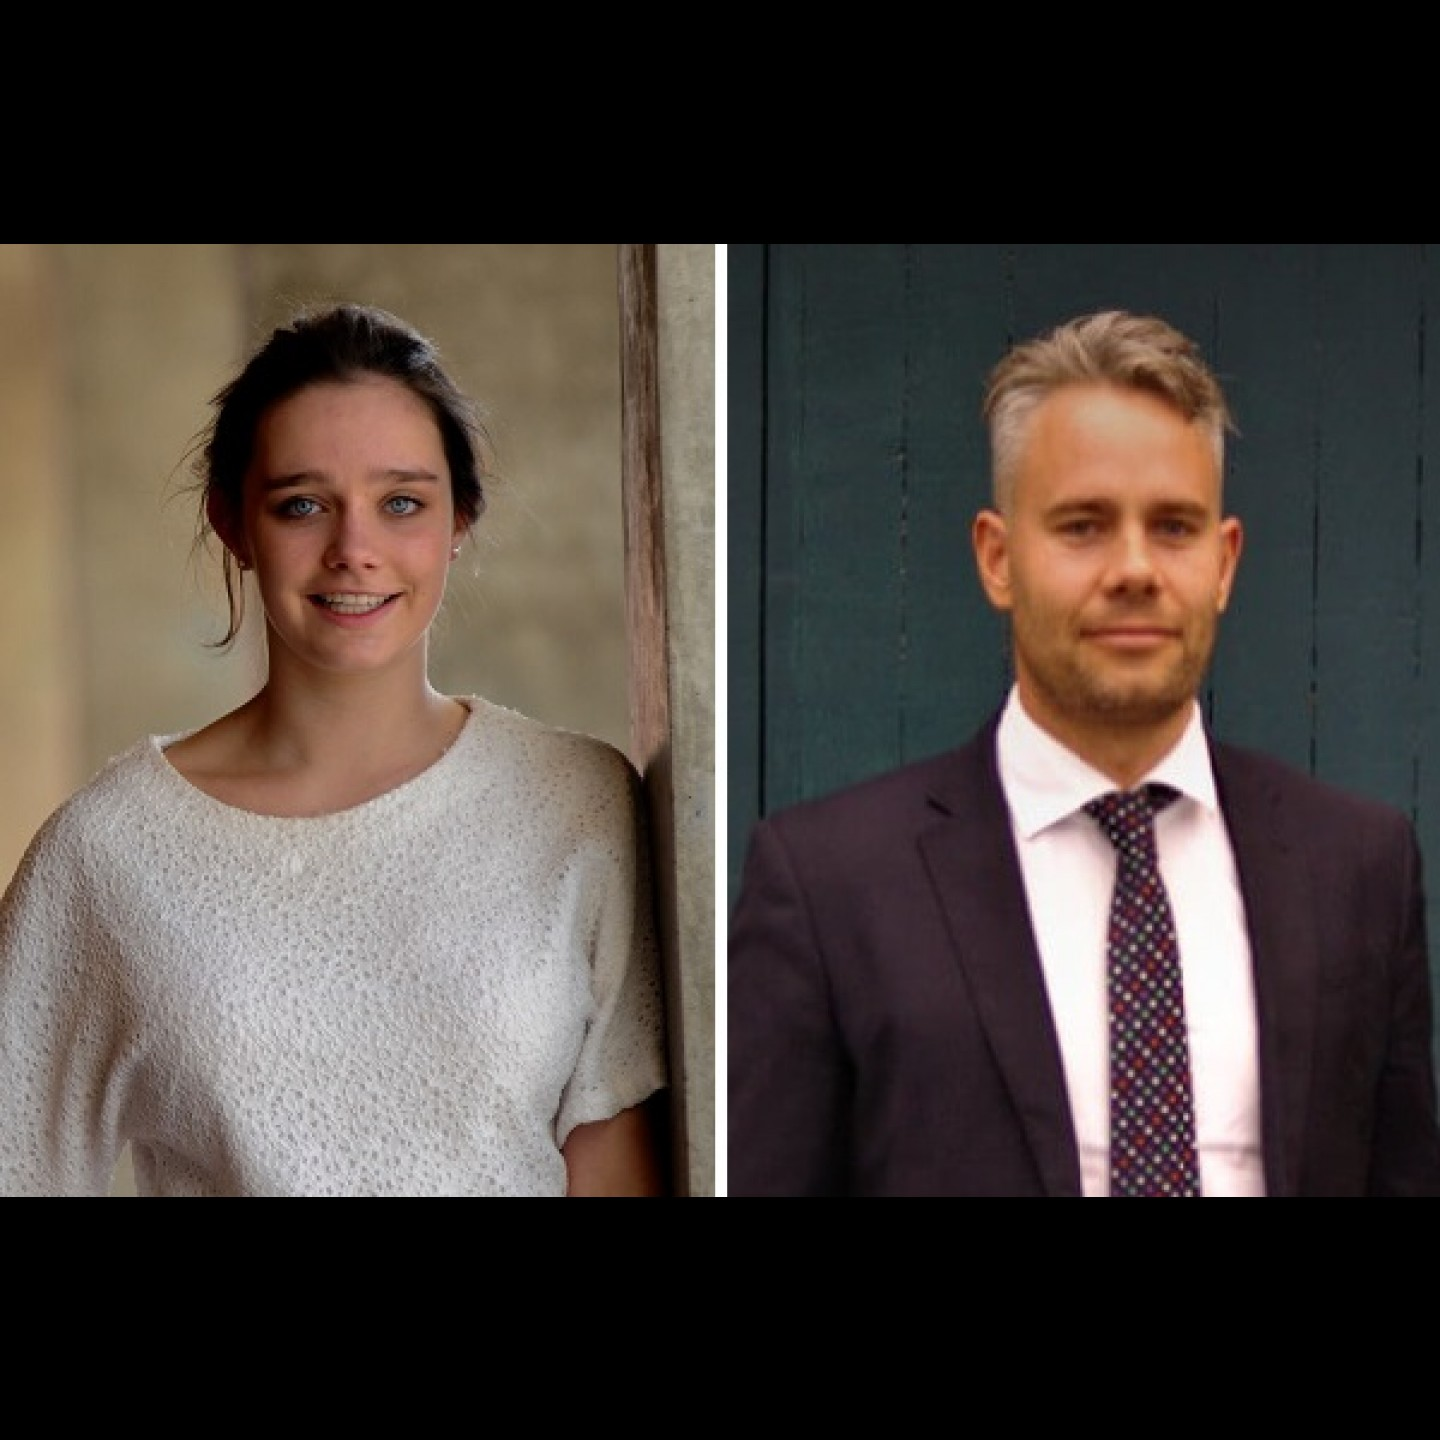 ITSNZ appoints first board members for youth roles